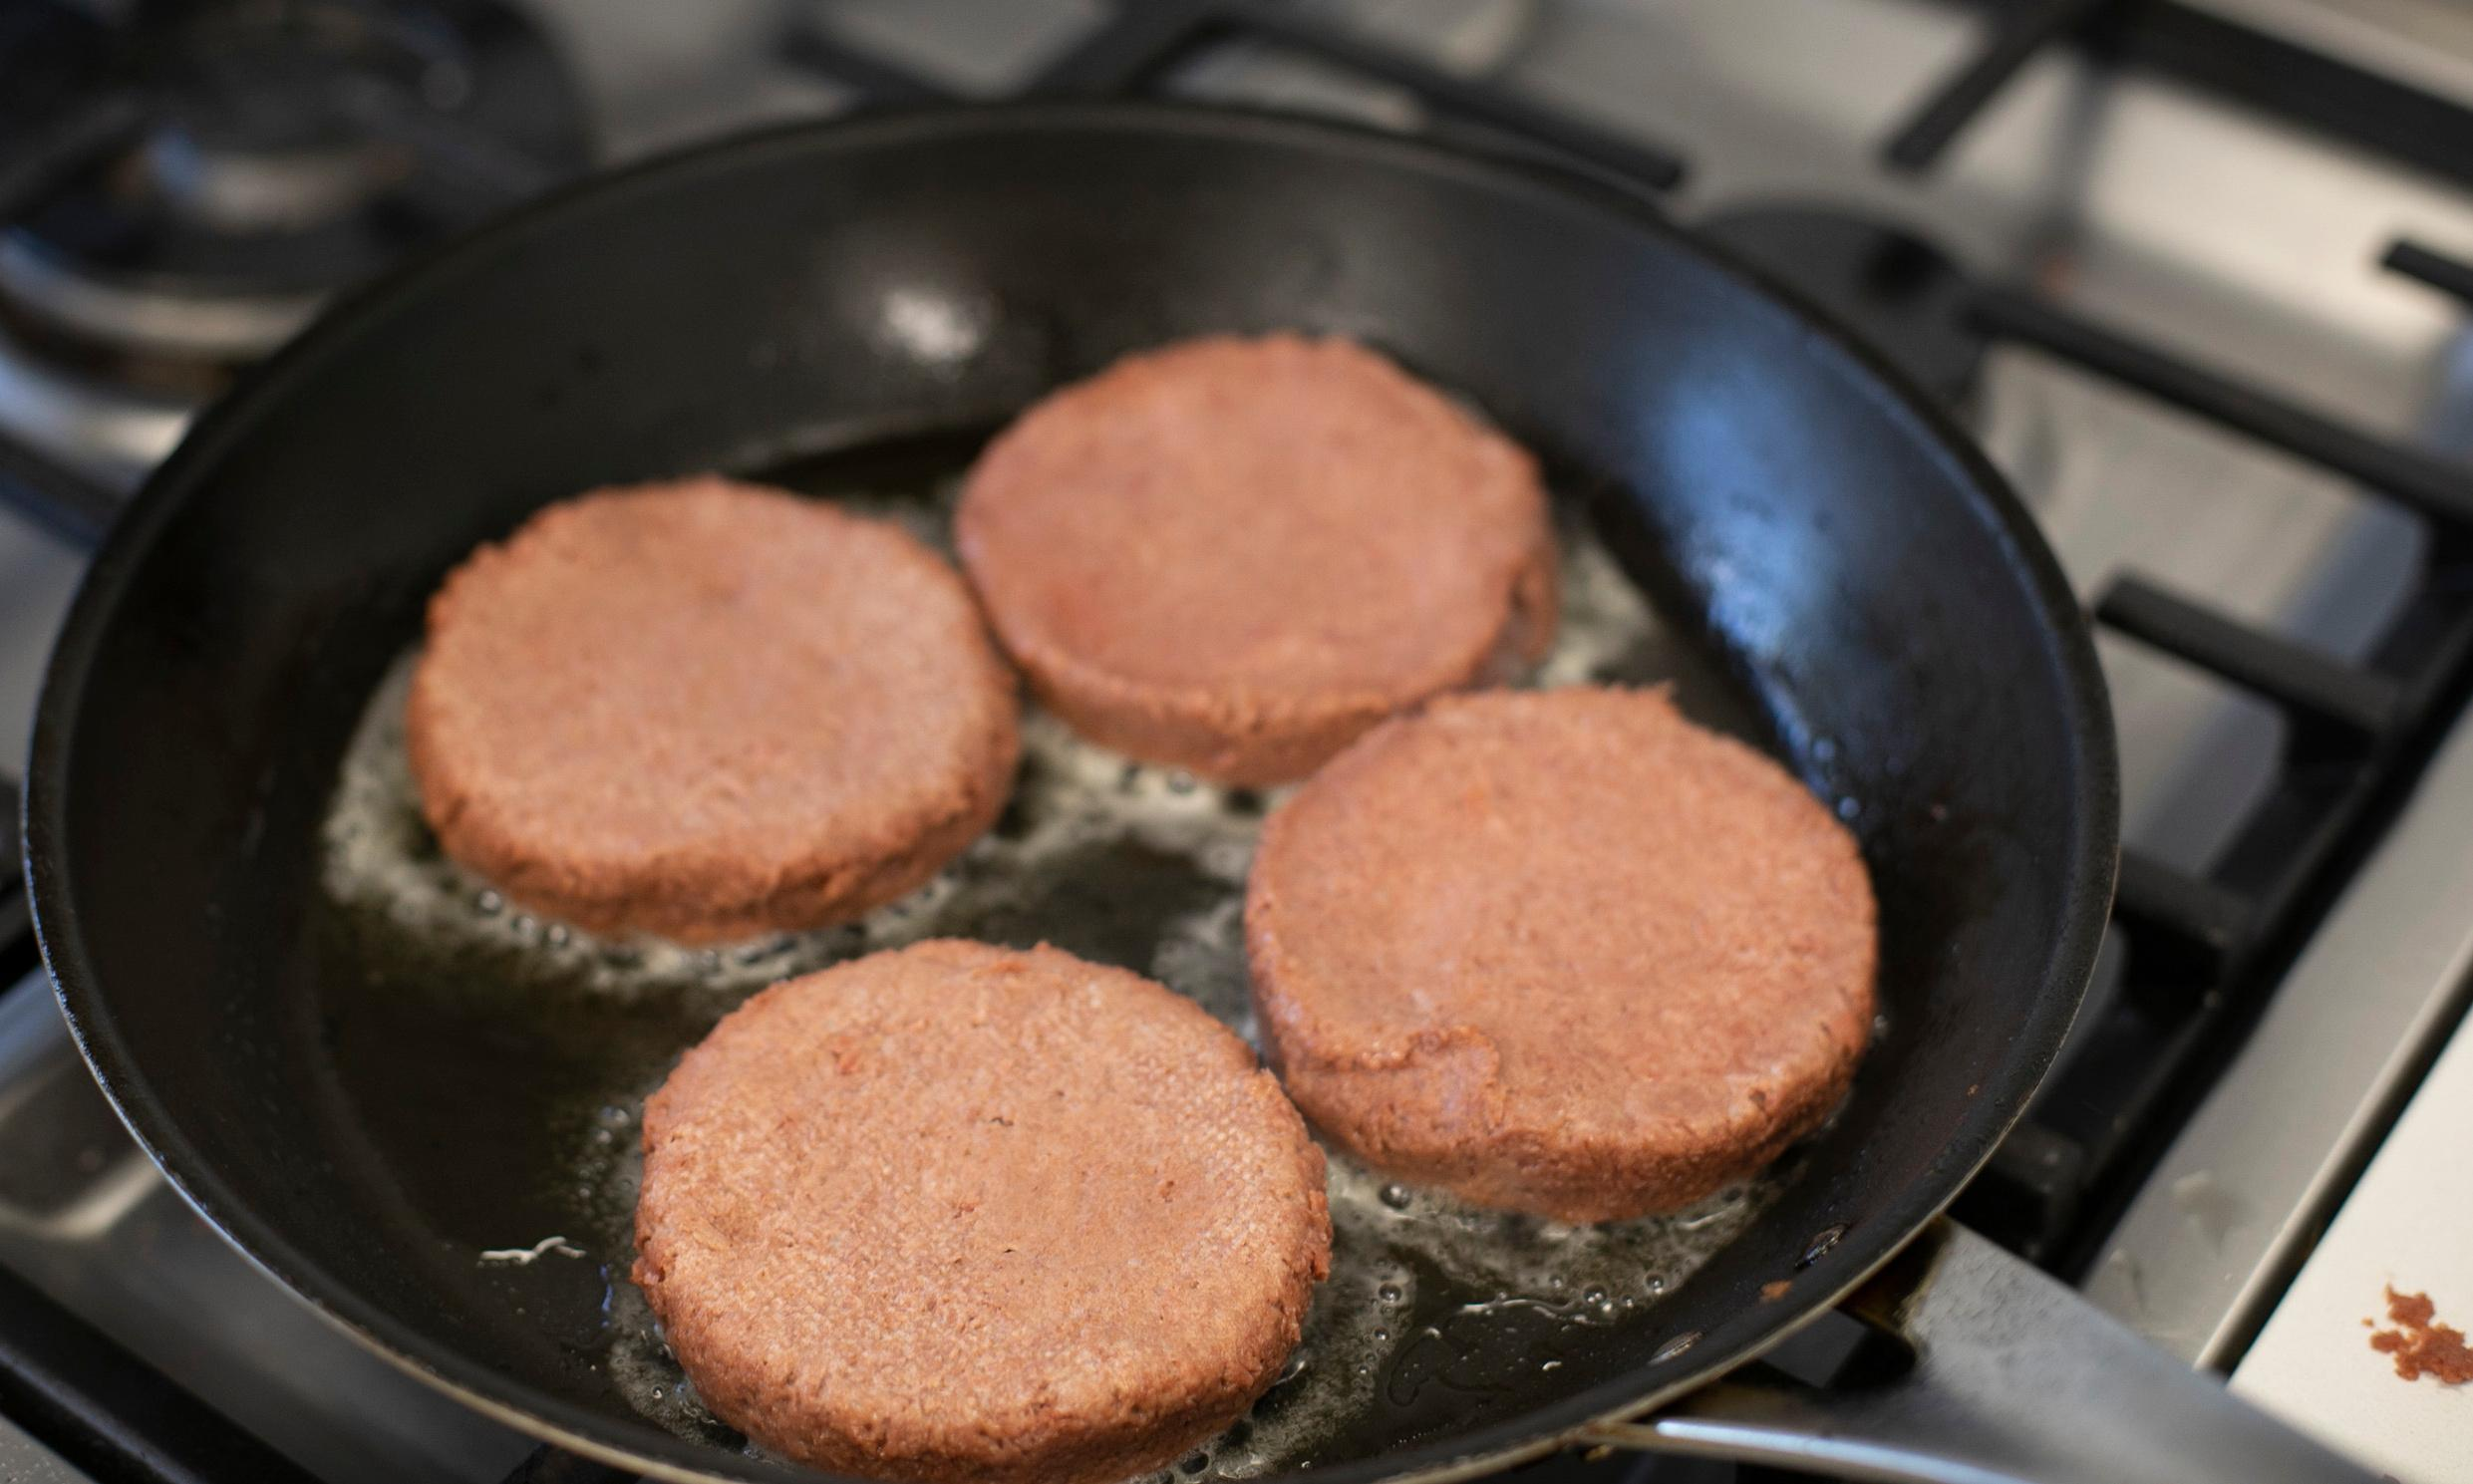 Fake meat taste test: 'They had to keep running away from the pan to gag'